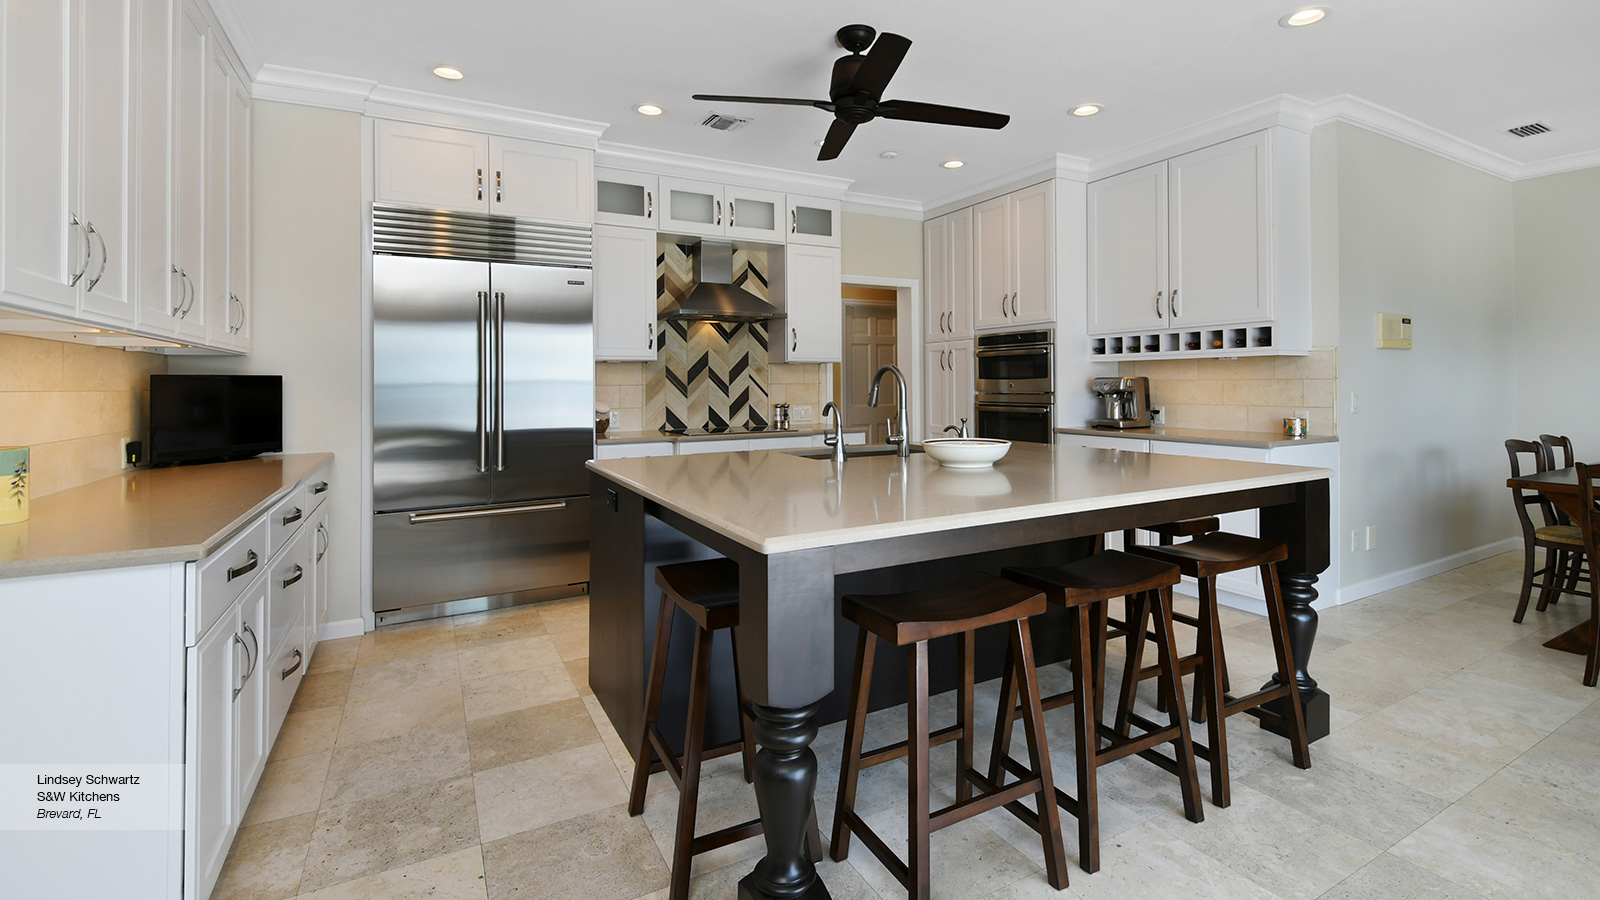 Pearl White Shaker Cabinets in a Casual Kitchen - Omega